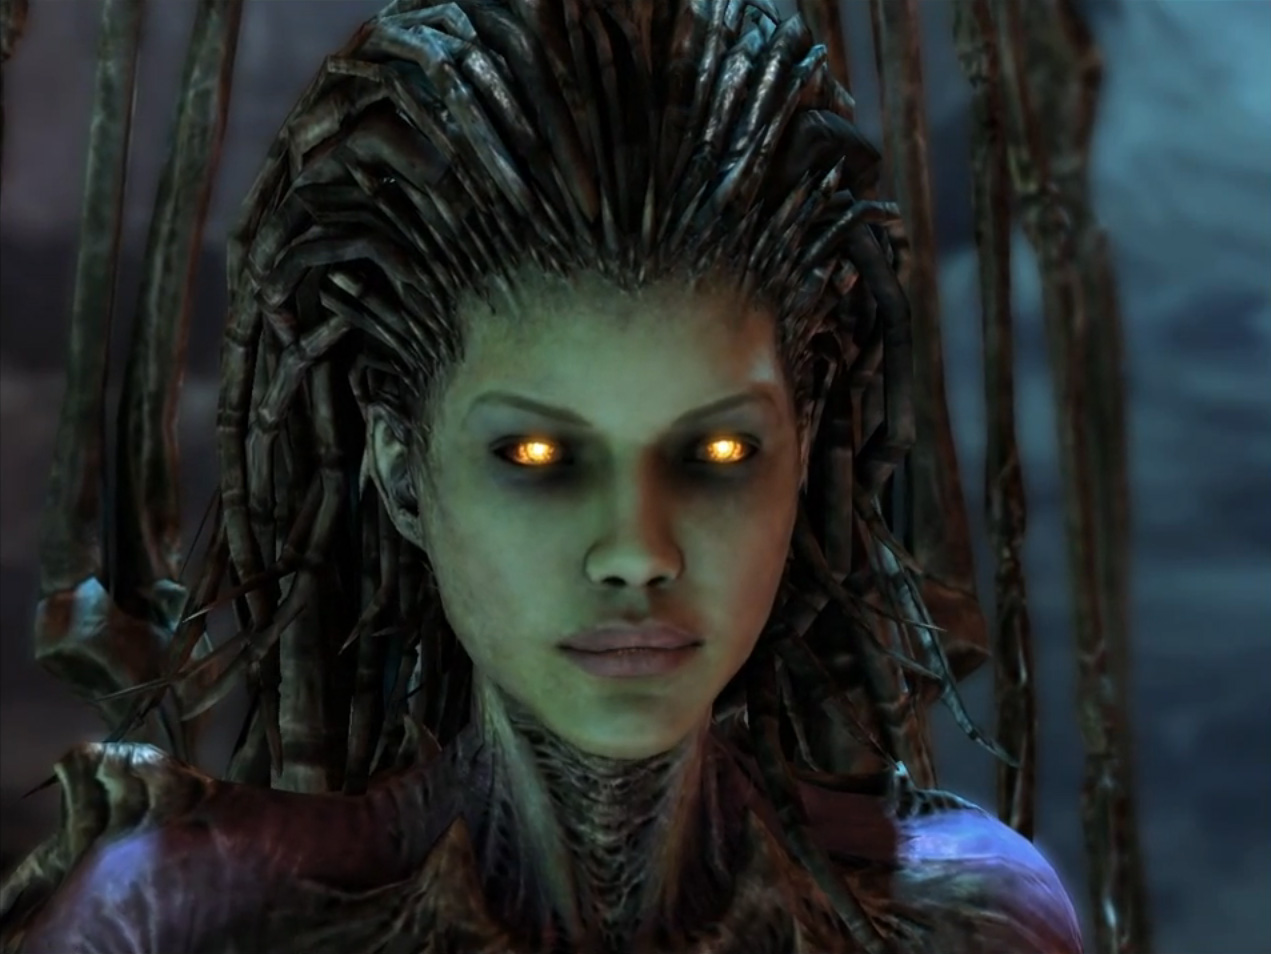 Kerrigan, Queen of the Swarm, was once human. Now, vengeance fuels her every action.